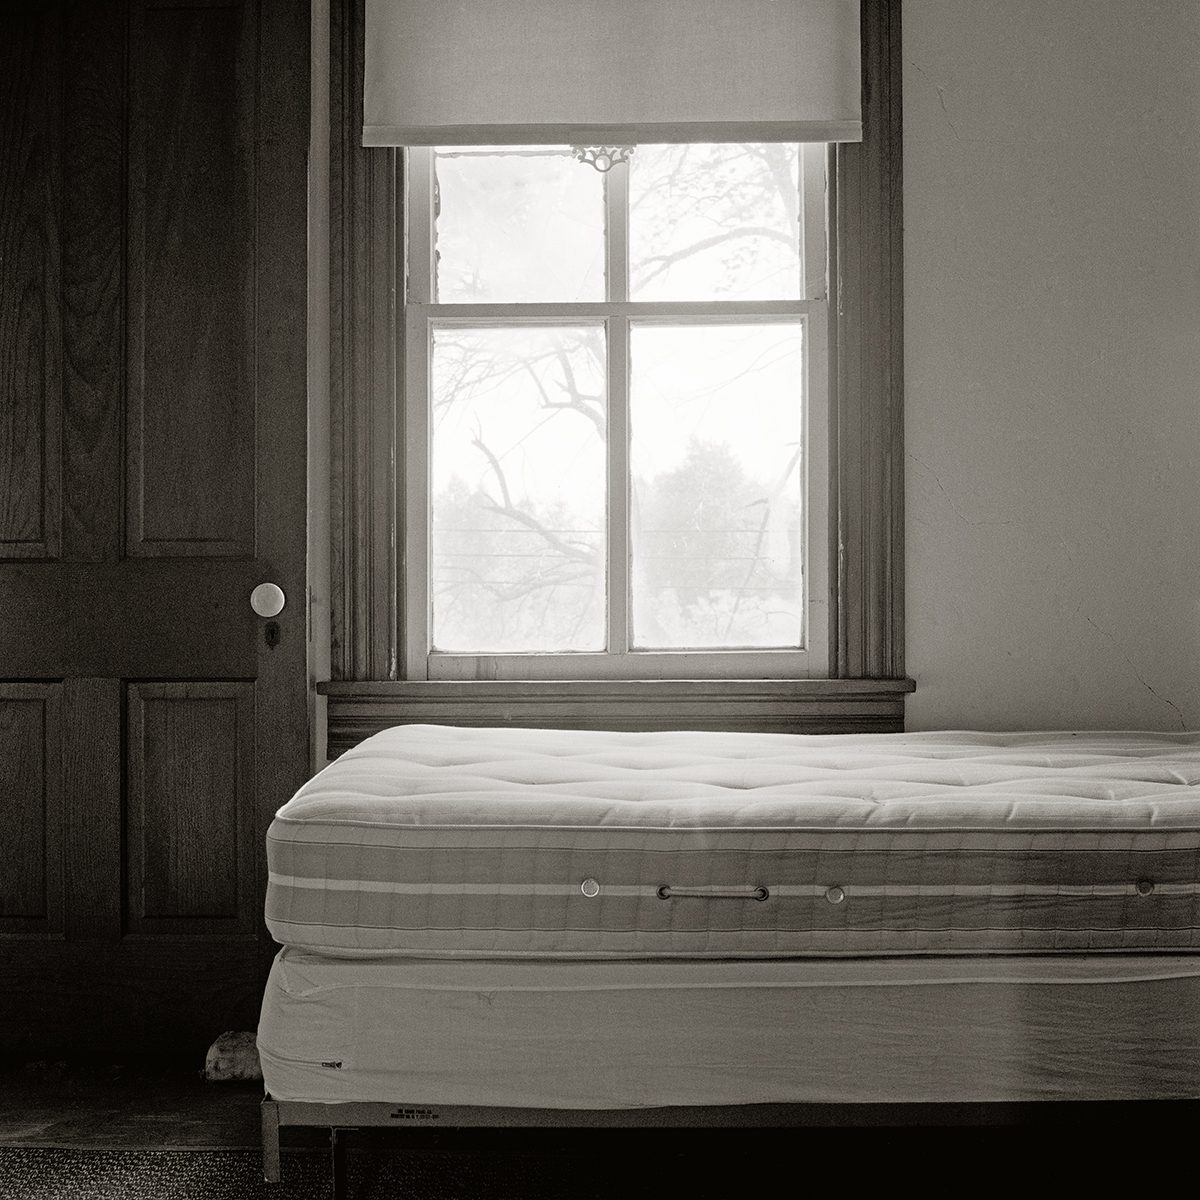 Bed_Window